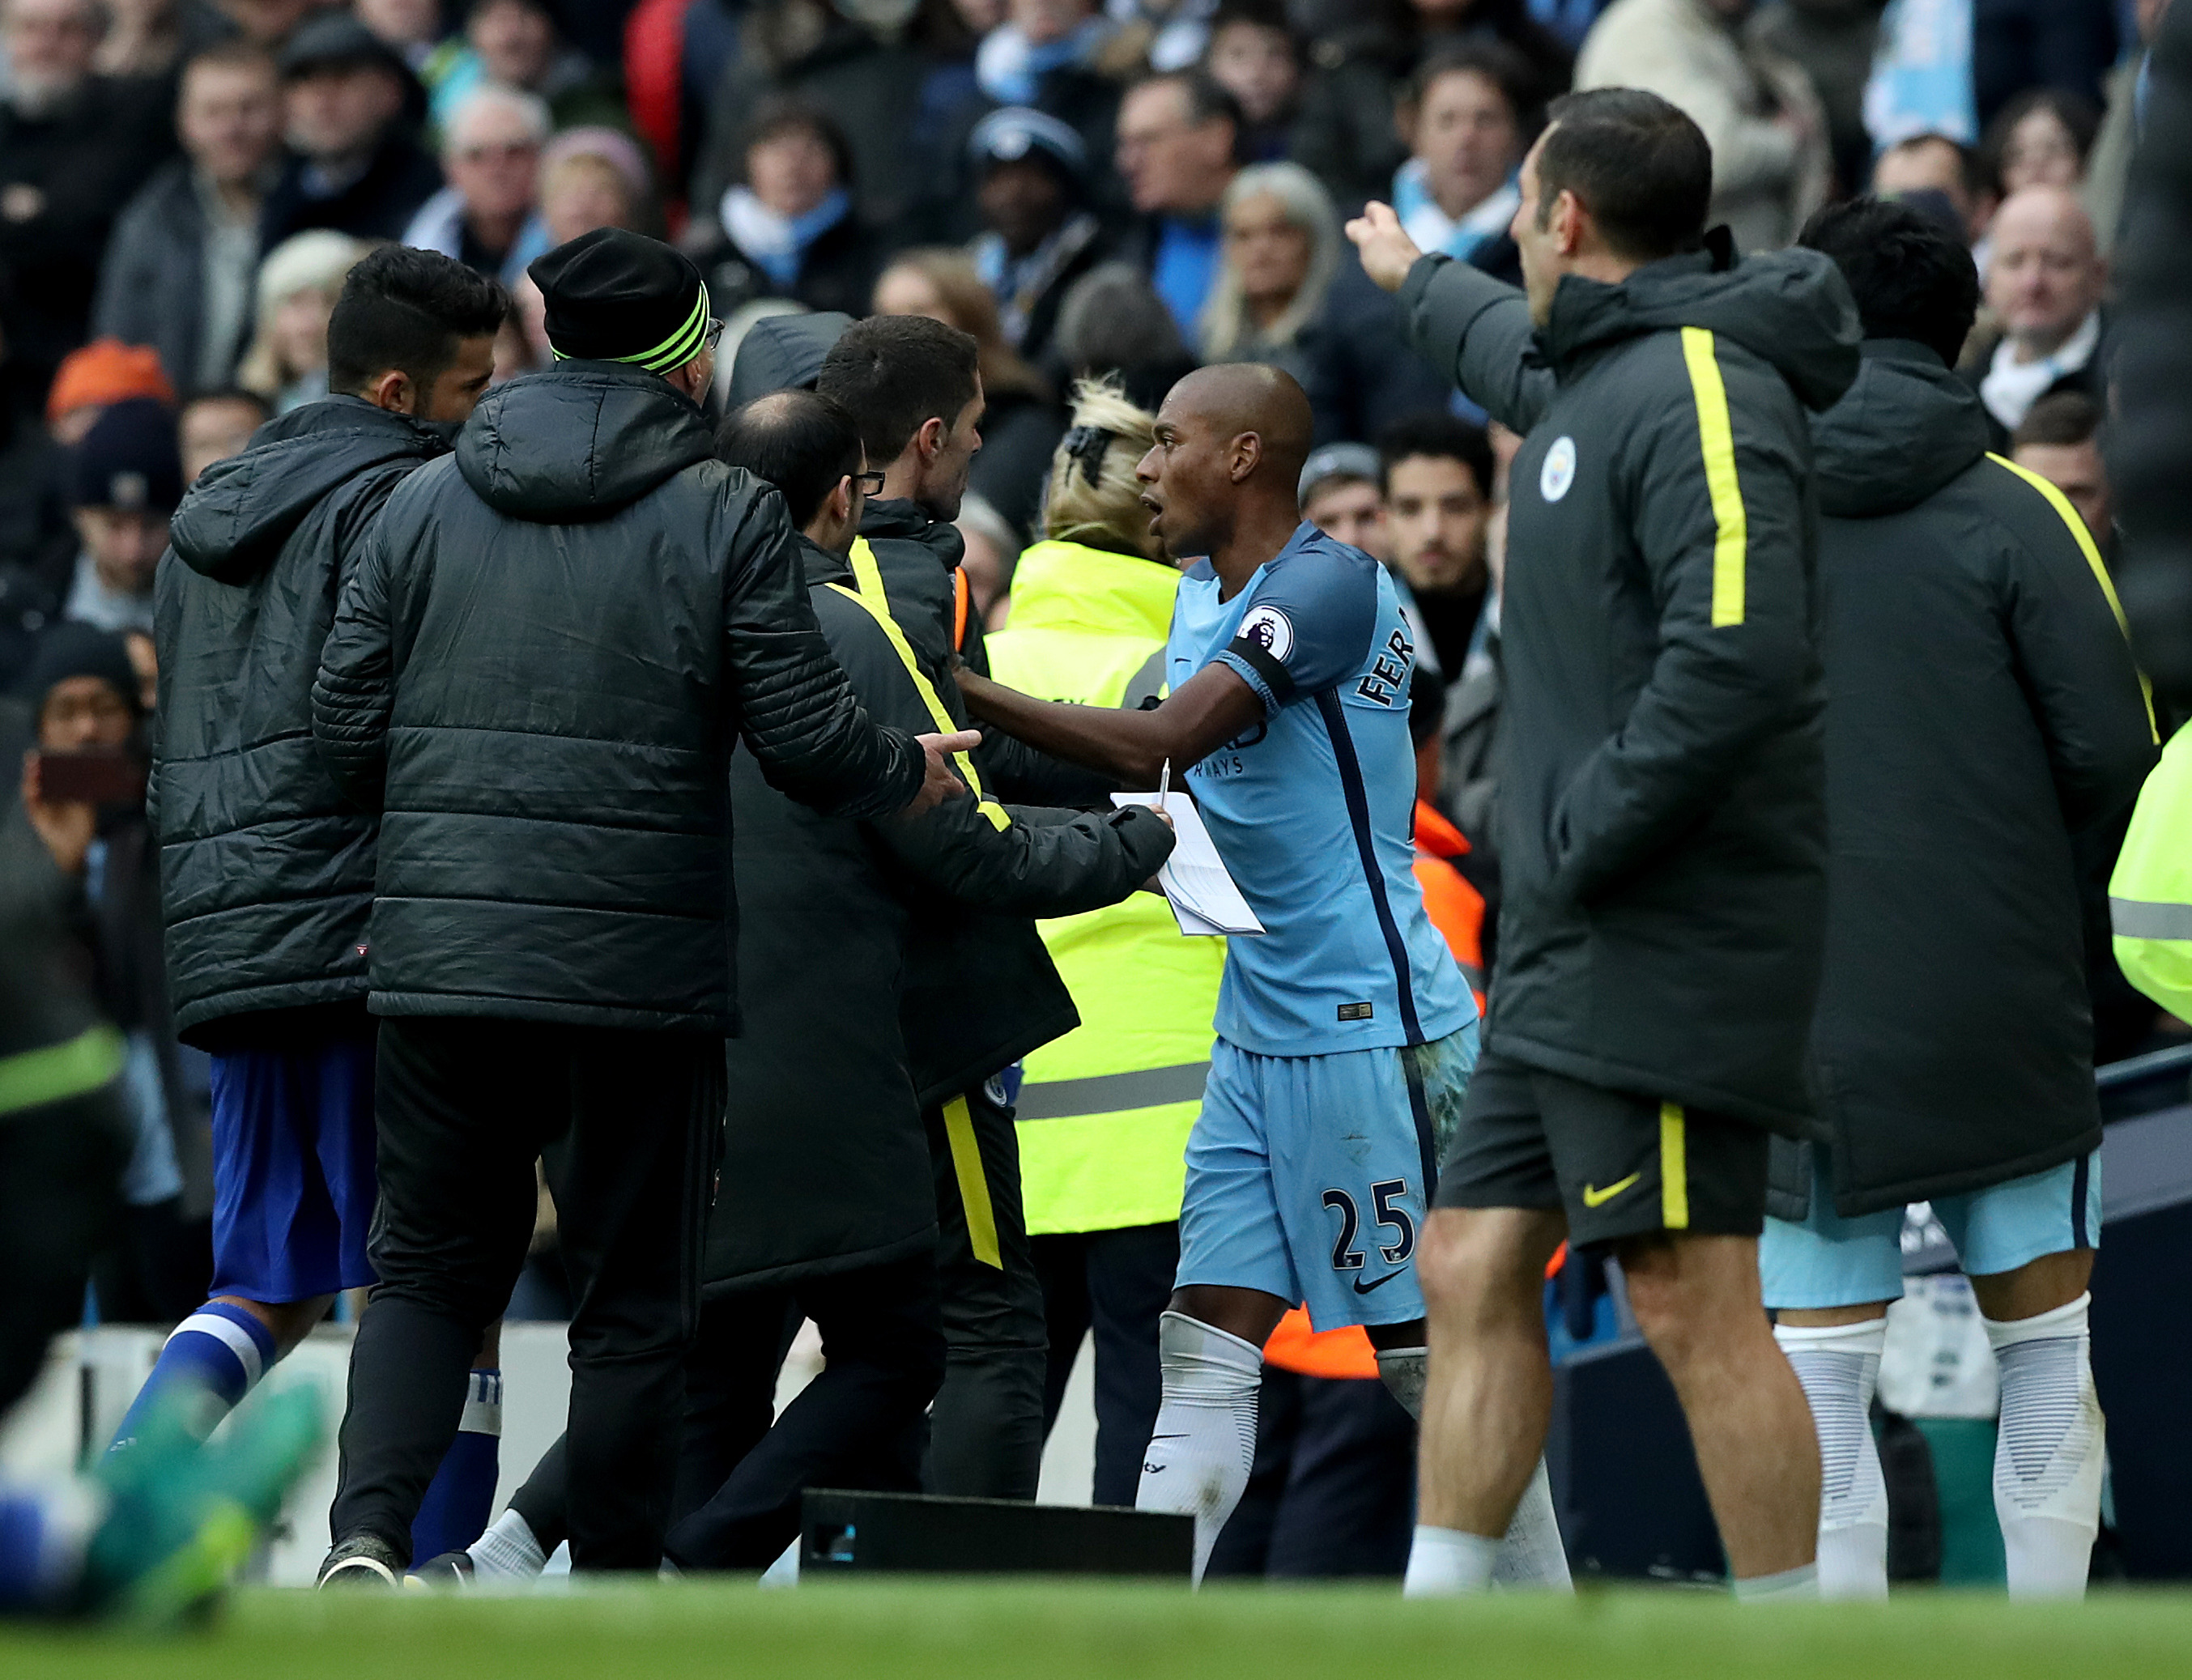 Manchester City's Fernandinho (centre) has some words as he is sent-off during the Premier League match at the Etihad Stadium, Manchester.